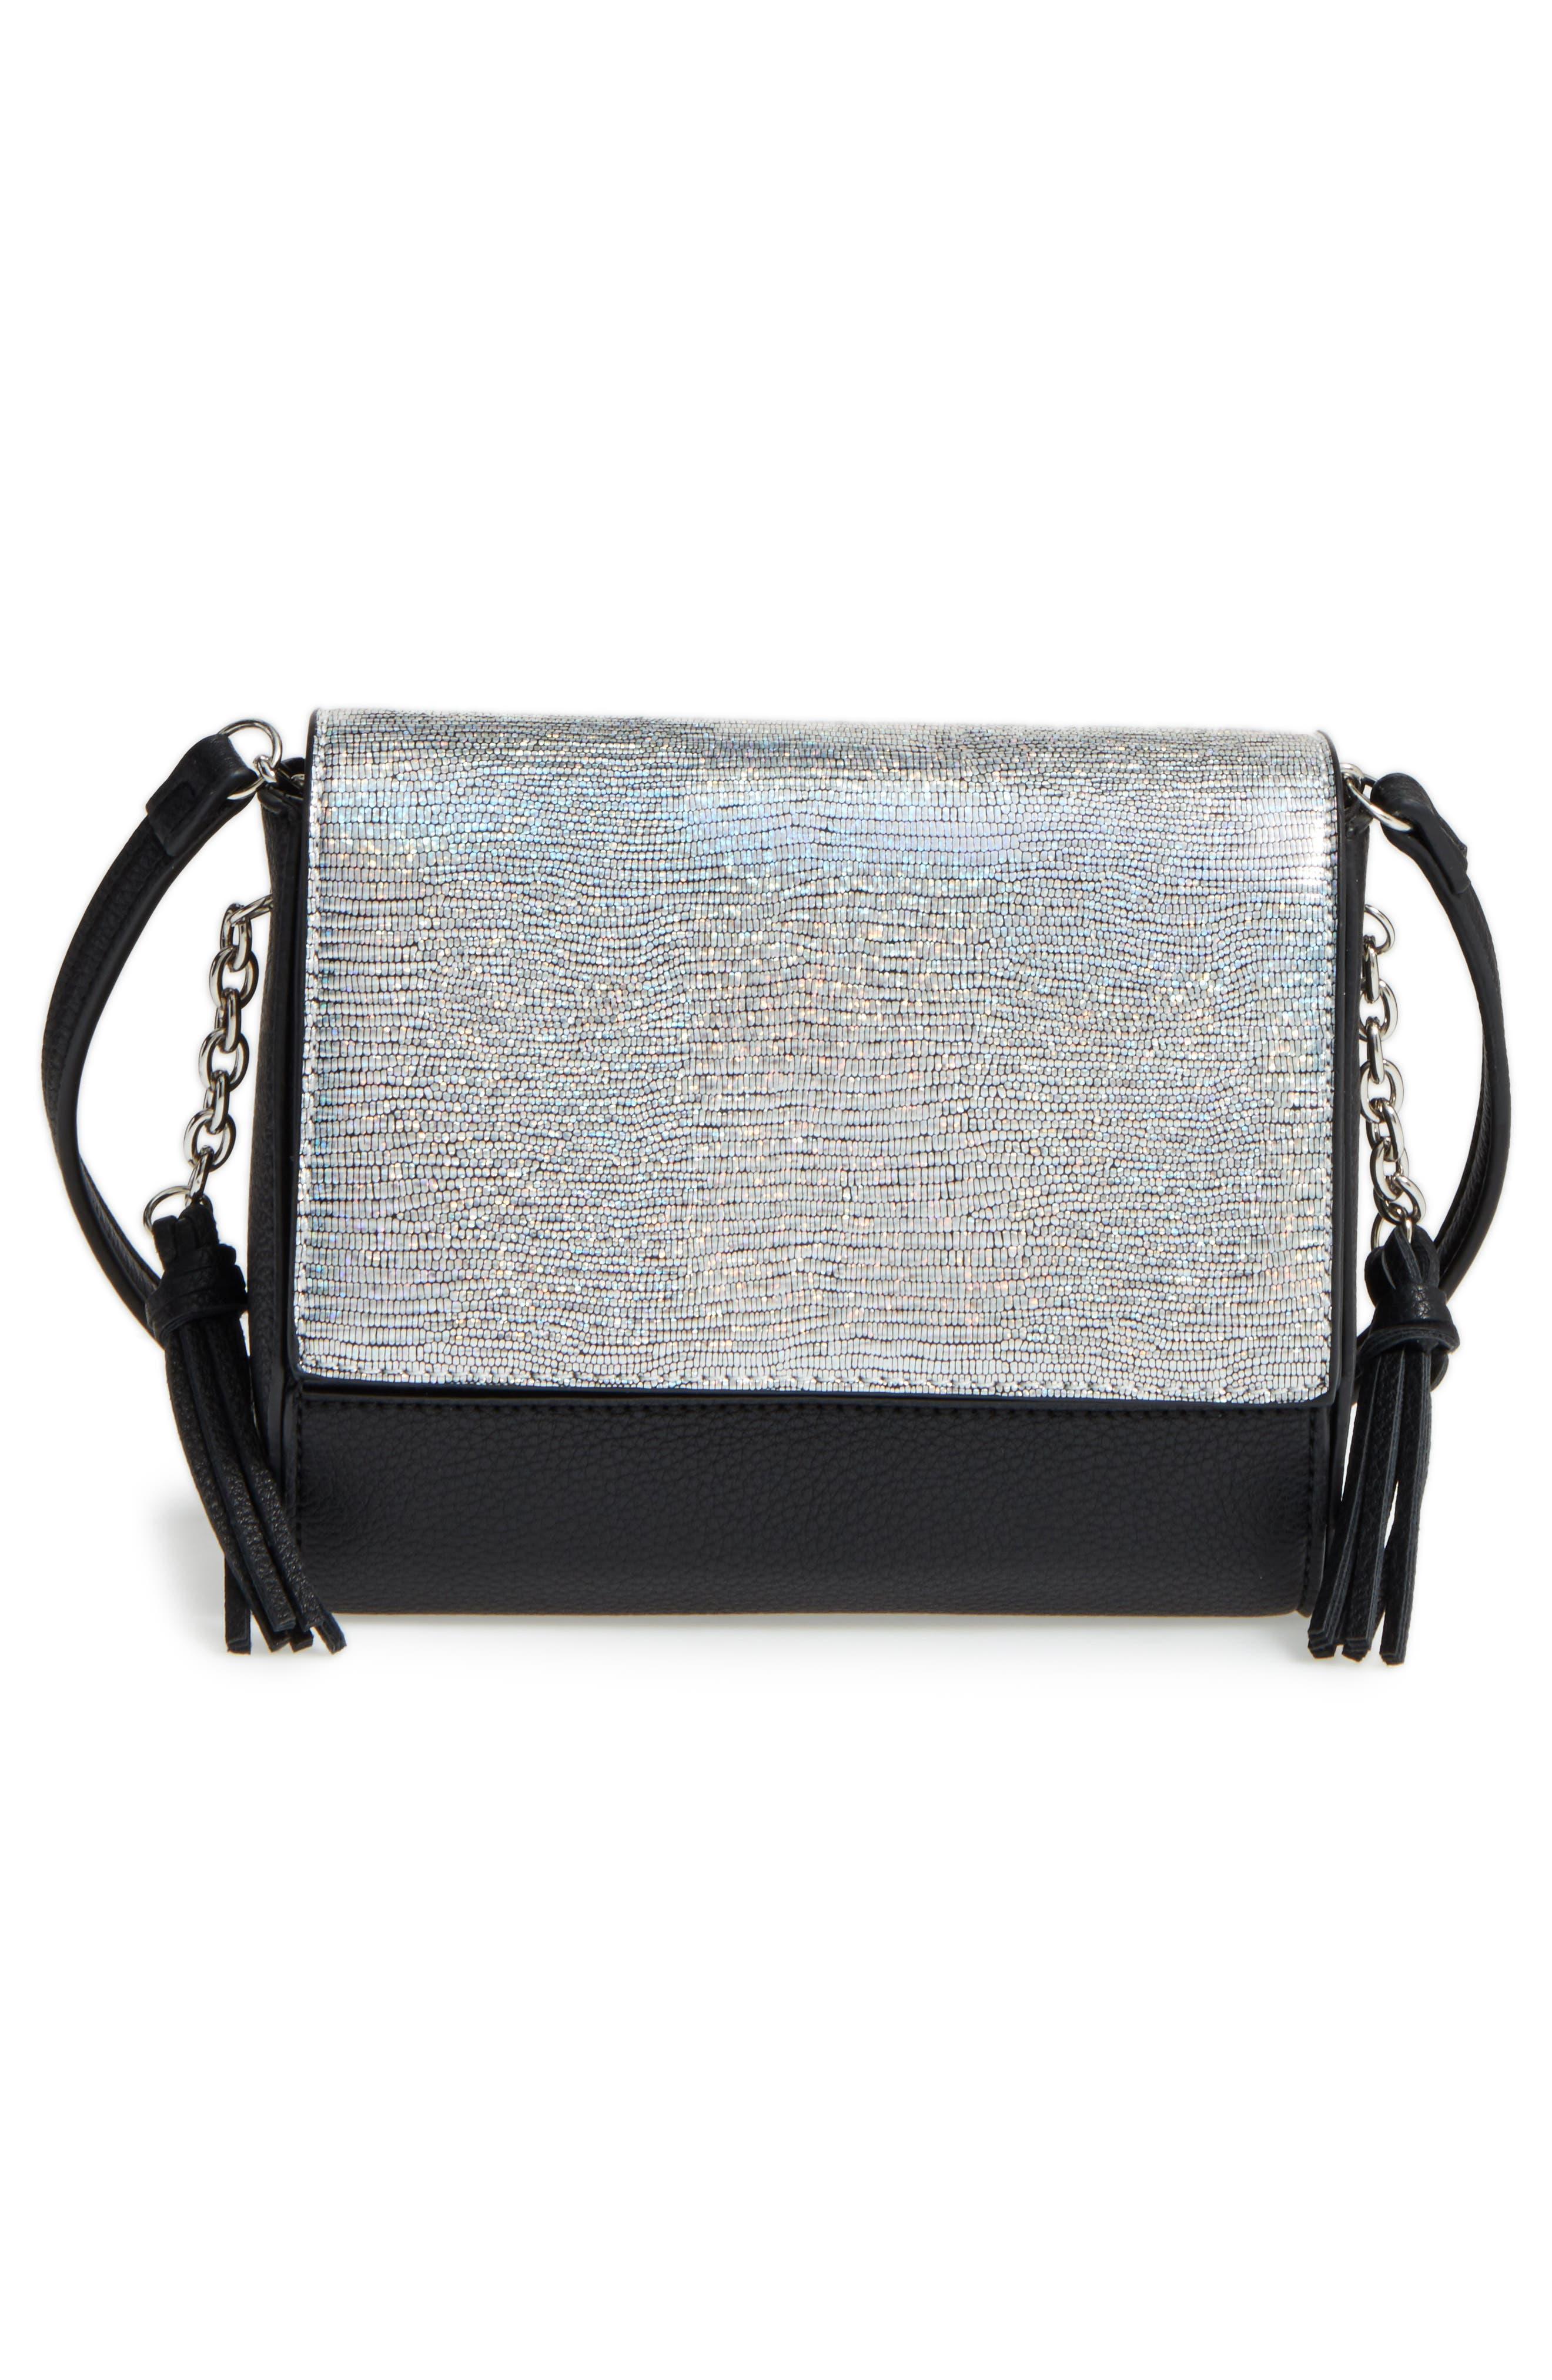 Alternate Image 1 Selected - Street Level Convertible Faux Leather Crossbody Bag